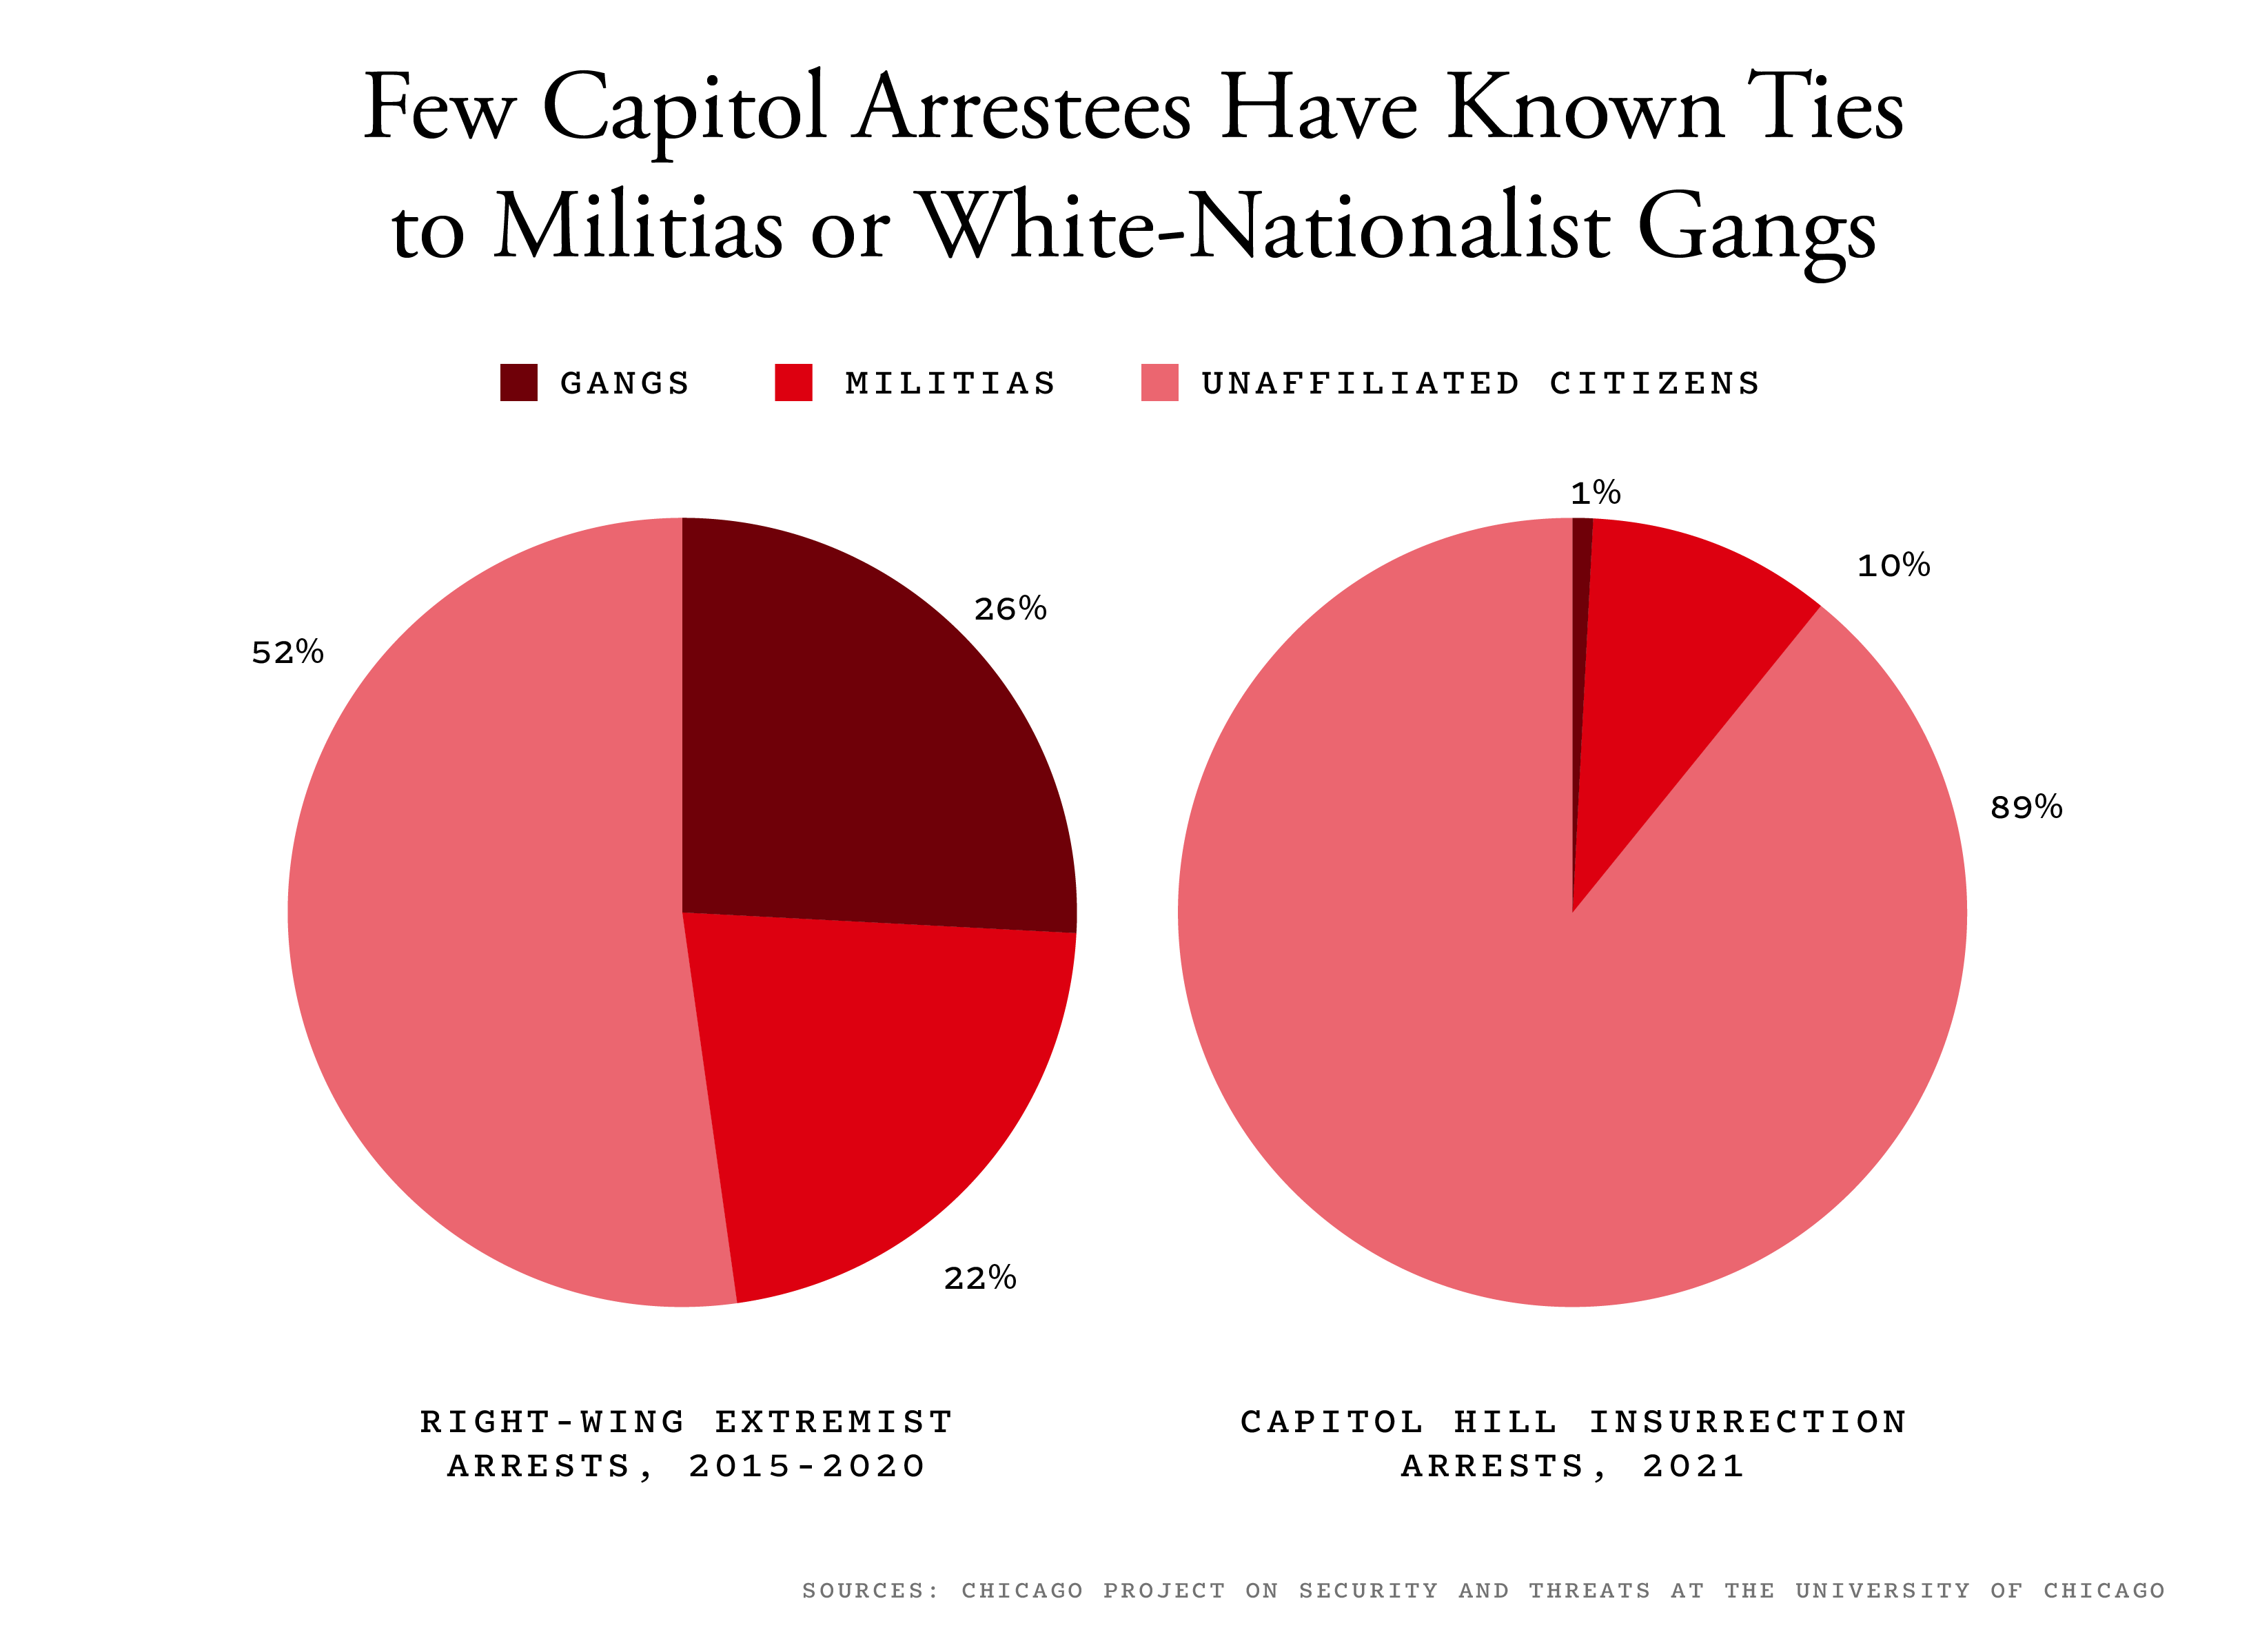 A chart of Capitol arrestees who have ties to militias or white-nationalist gangs.